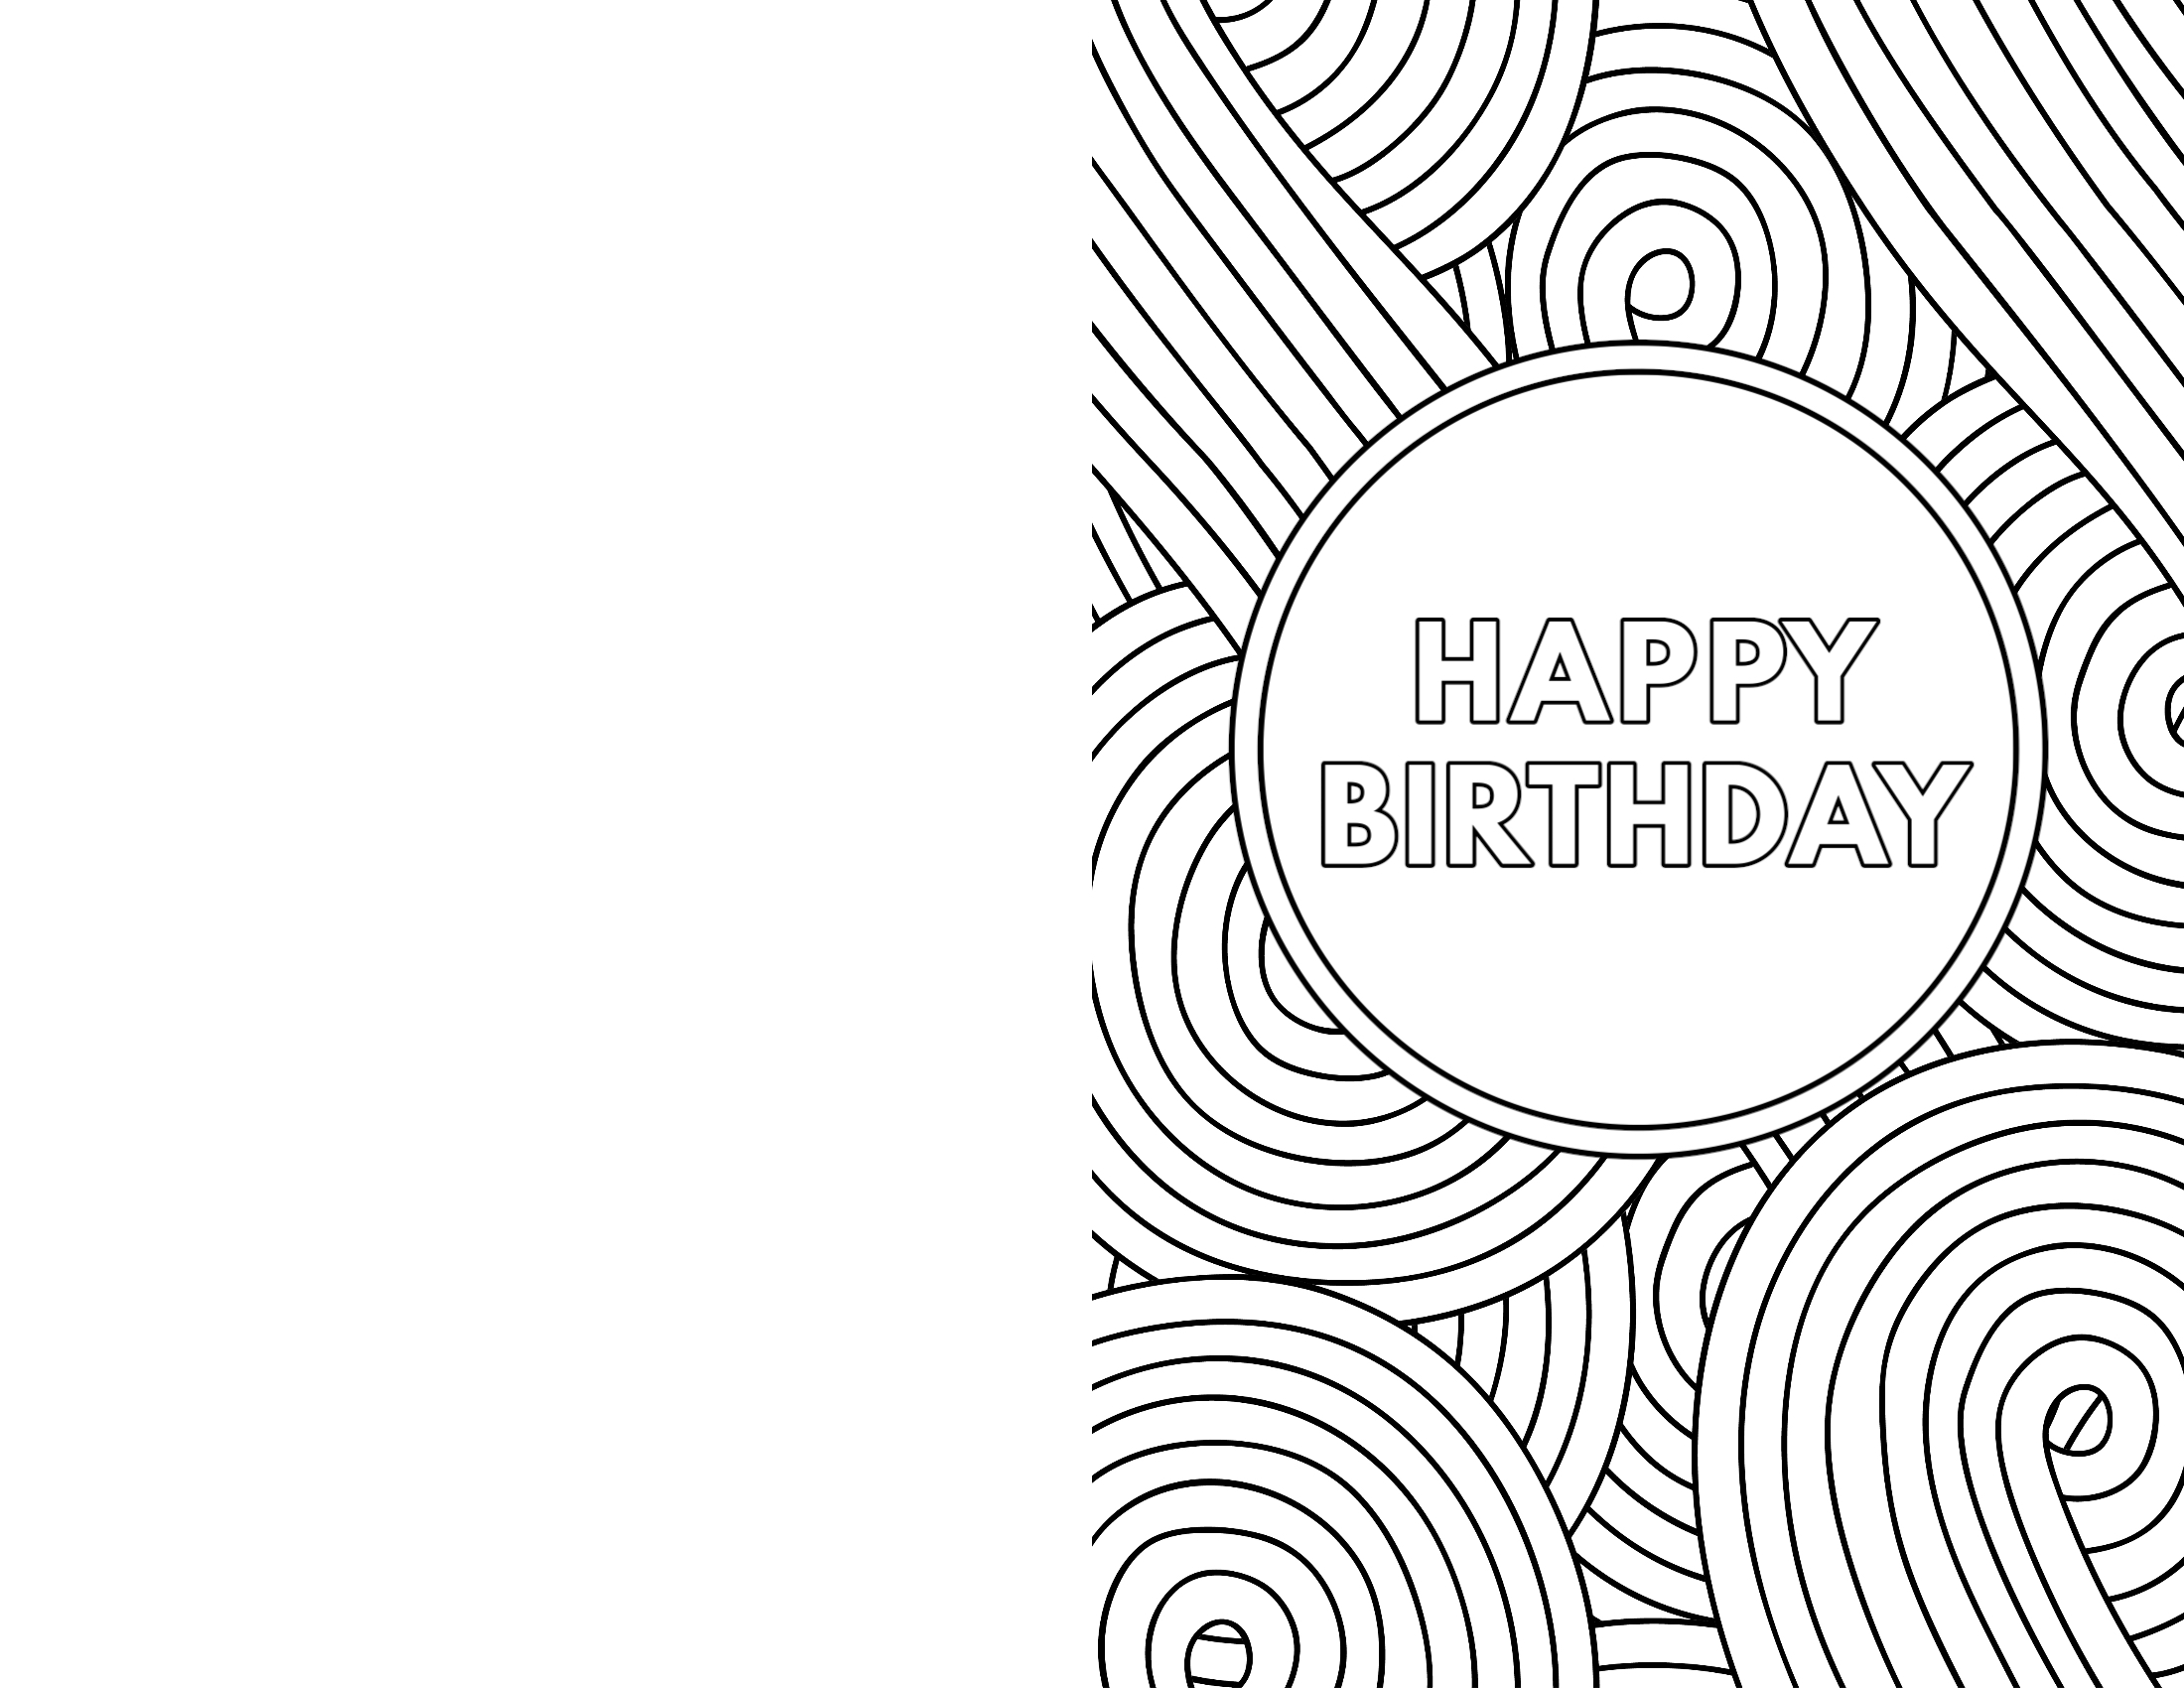 Swell Free Printable Birthday Cards Paper Trail Design Funny Birthday Cards Online Overcheapnameinfo